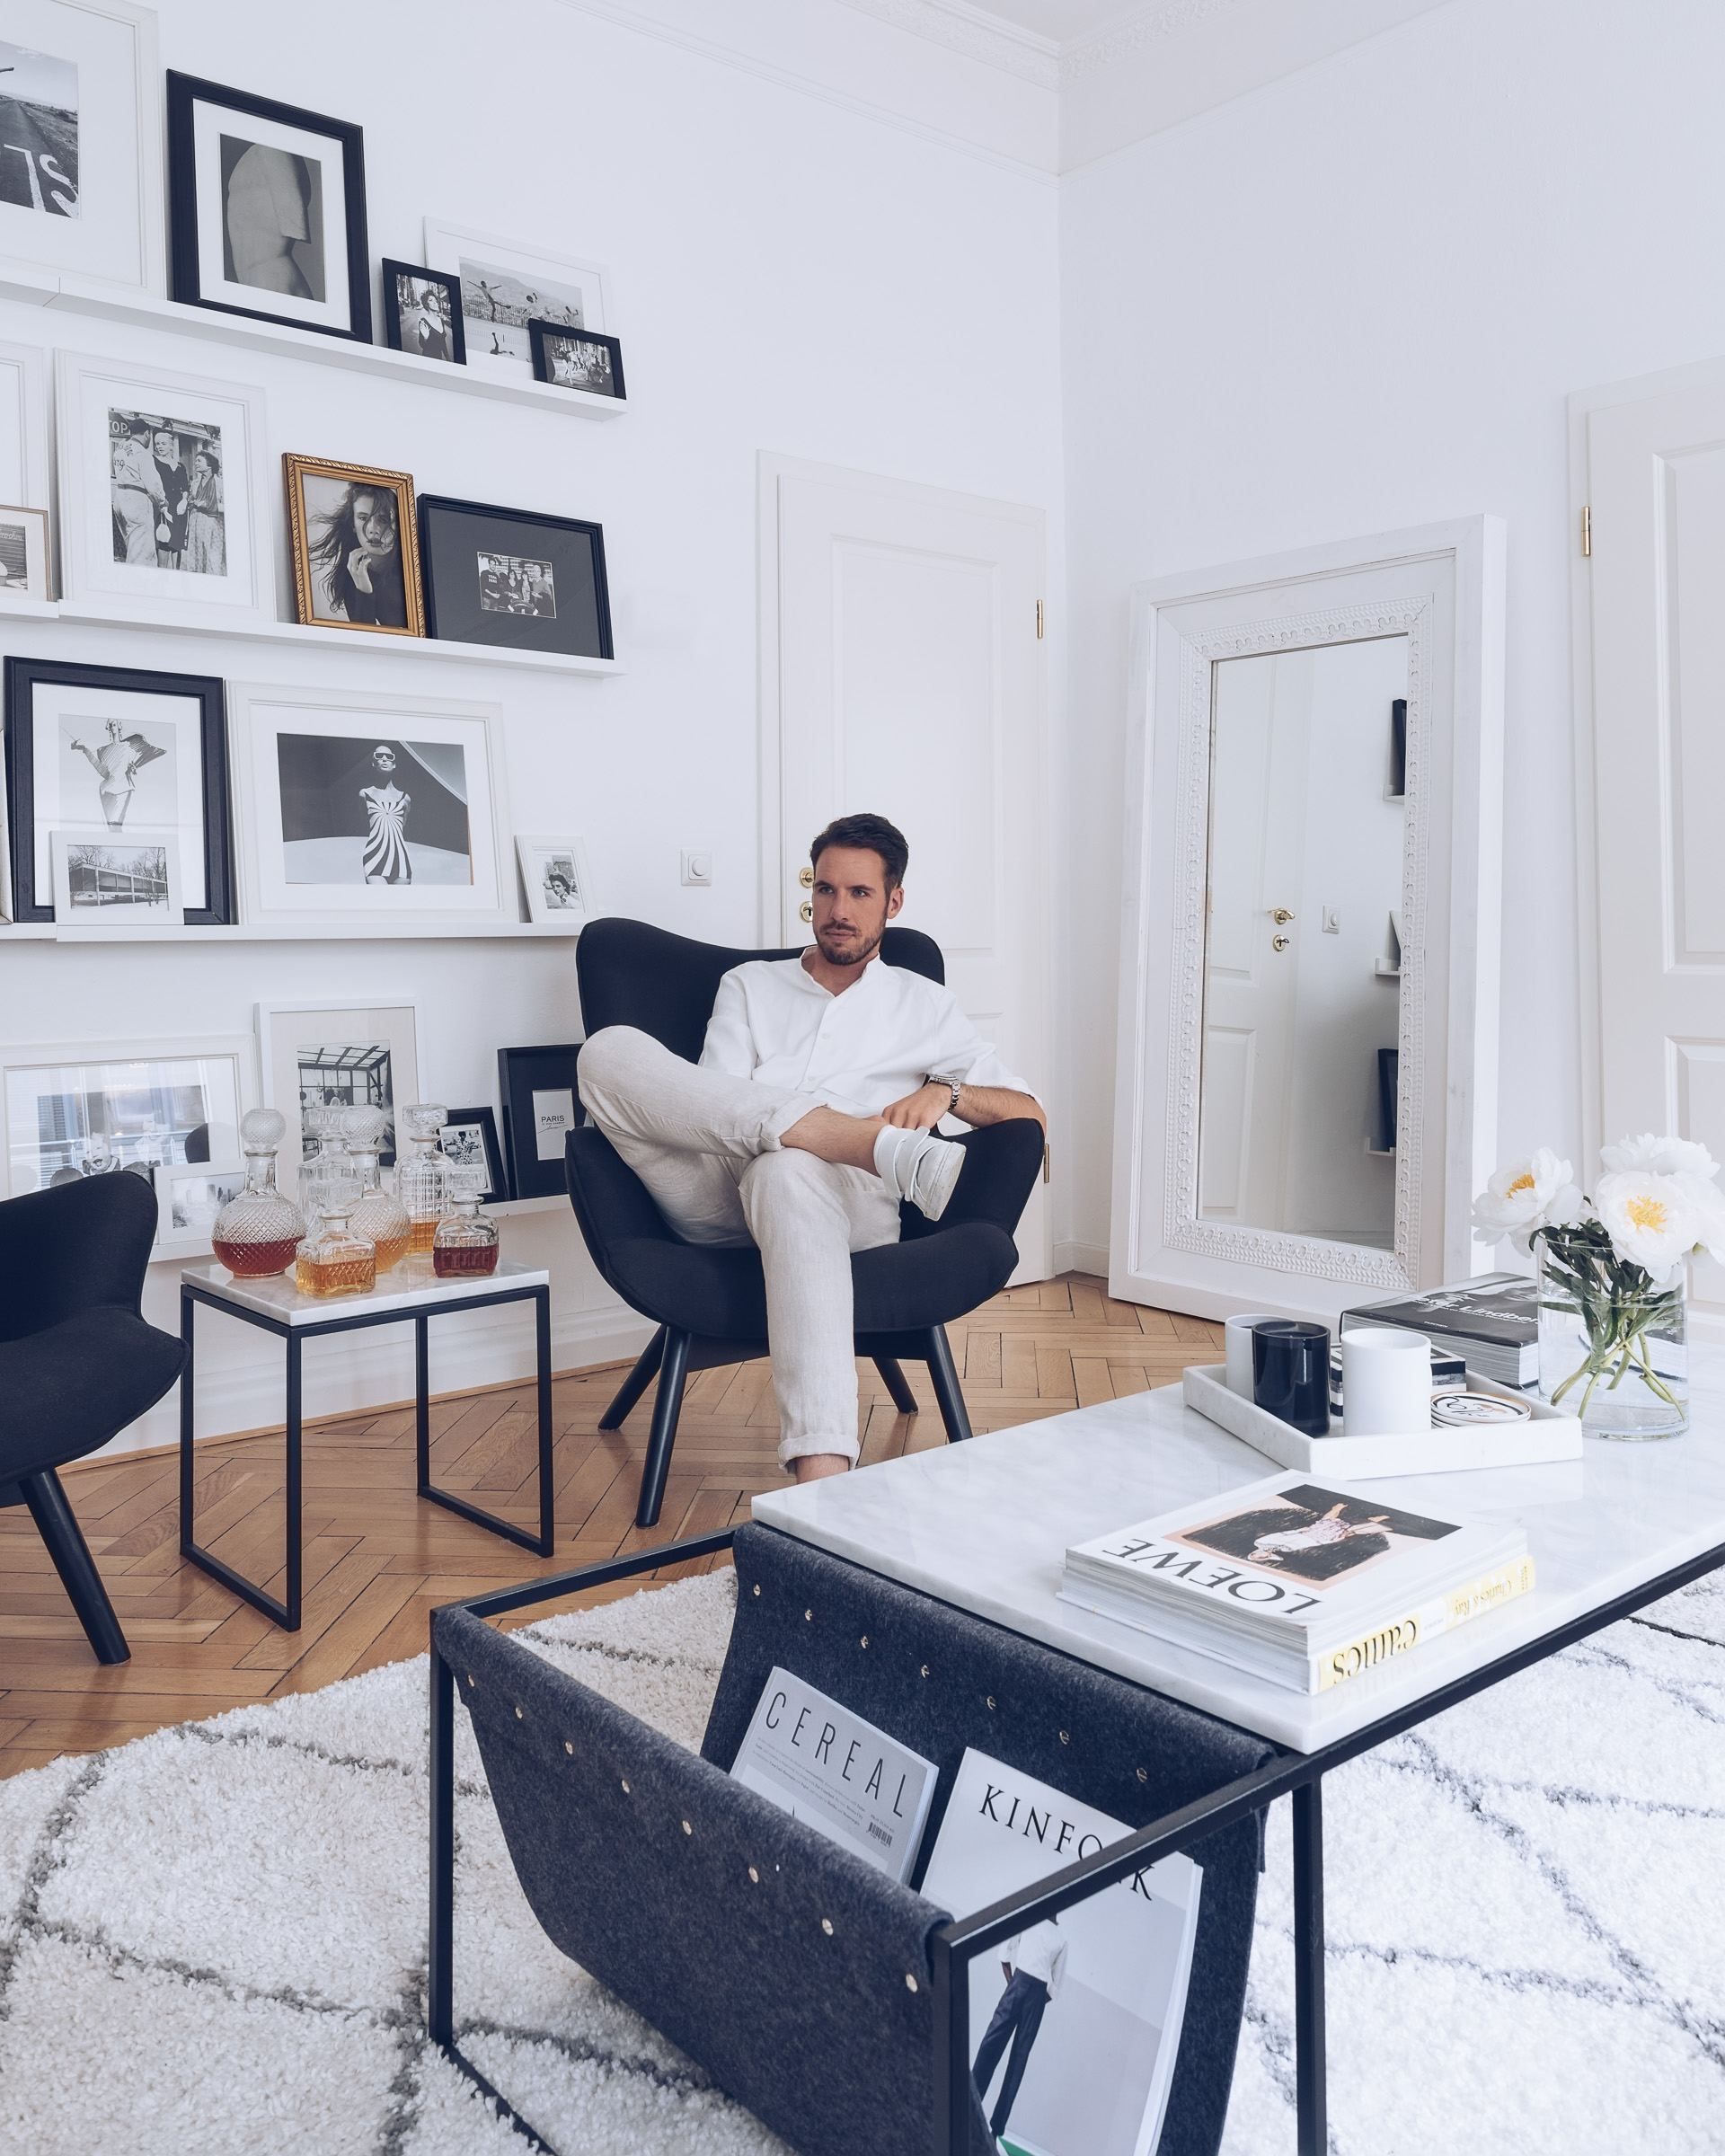 At Home Sebastian Schmidt by rose time cologne